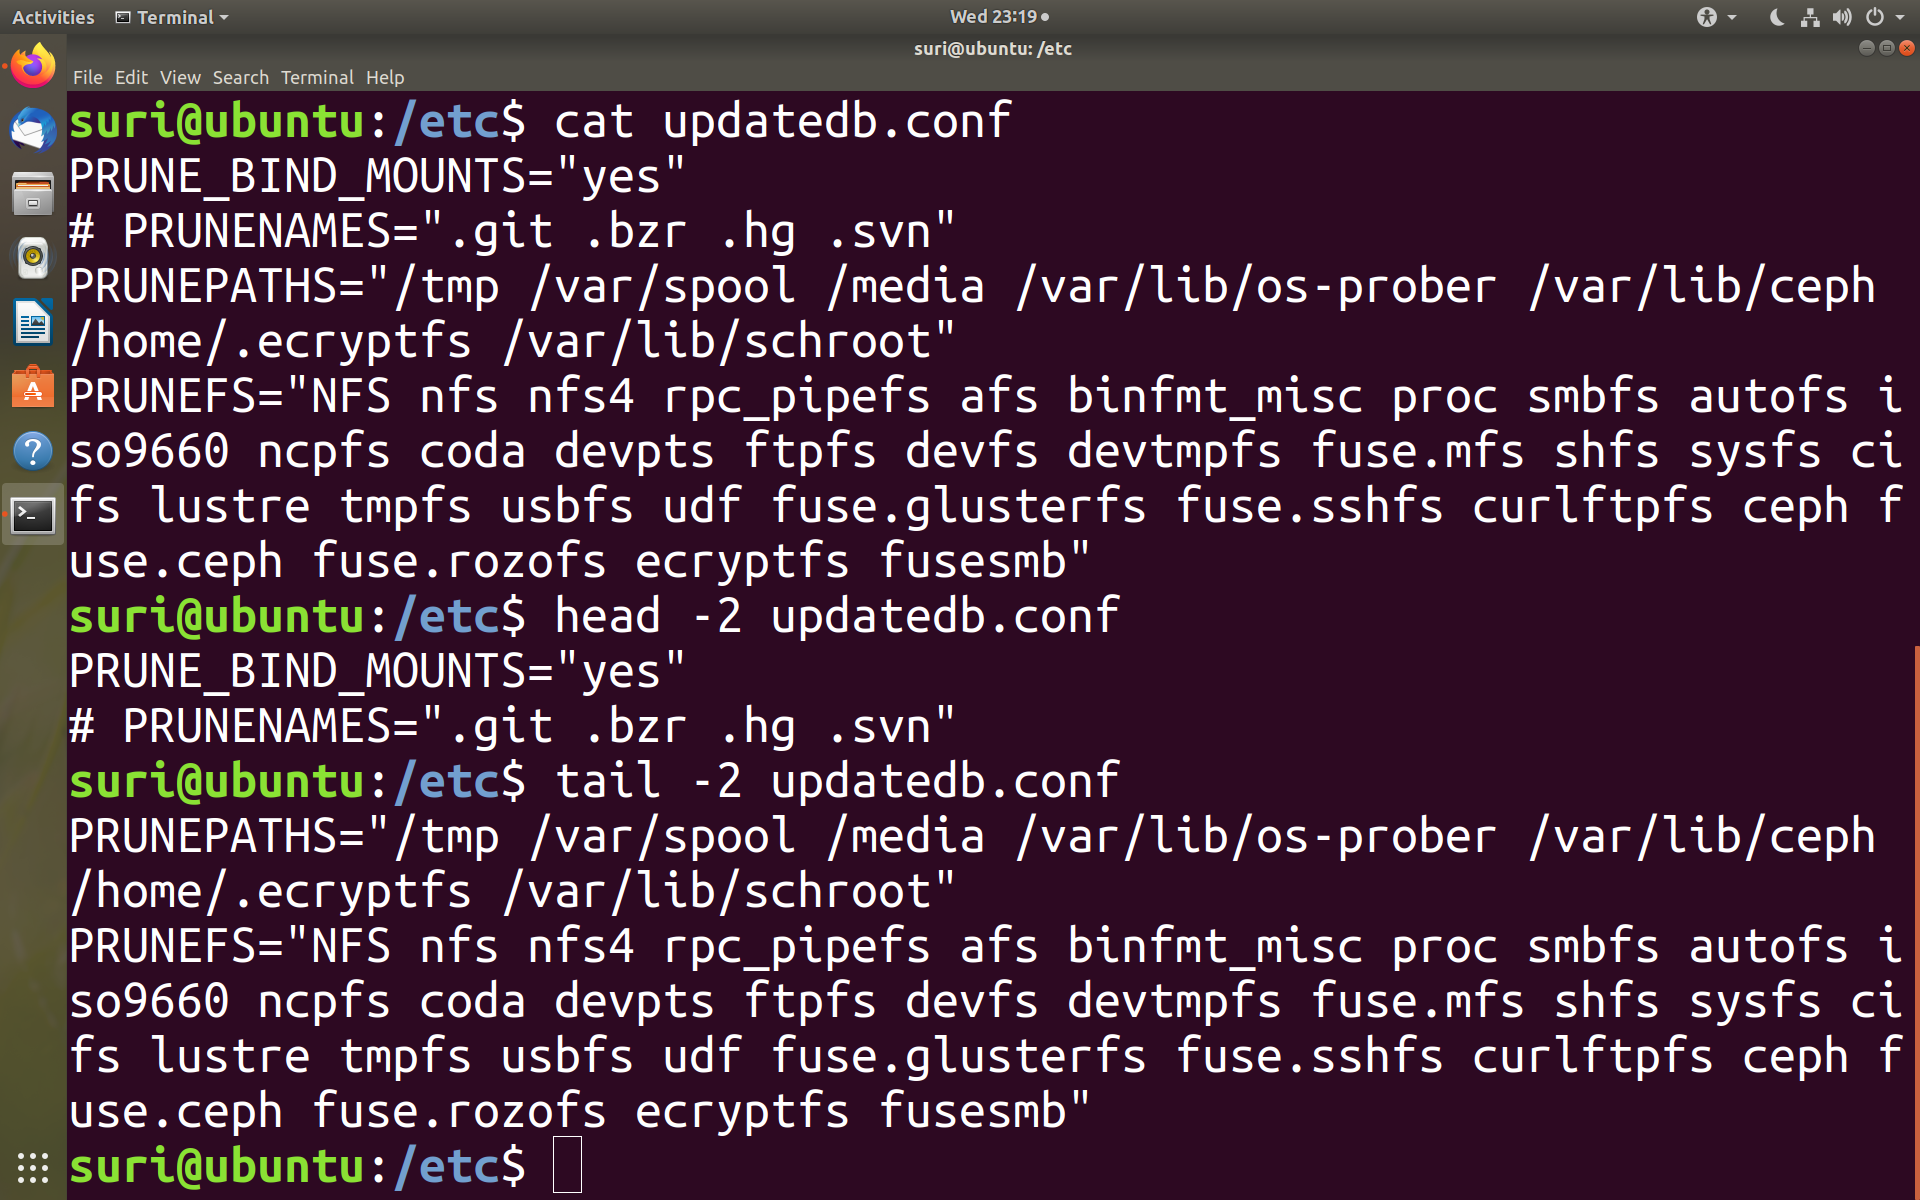 Working with files in Linux